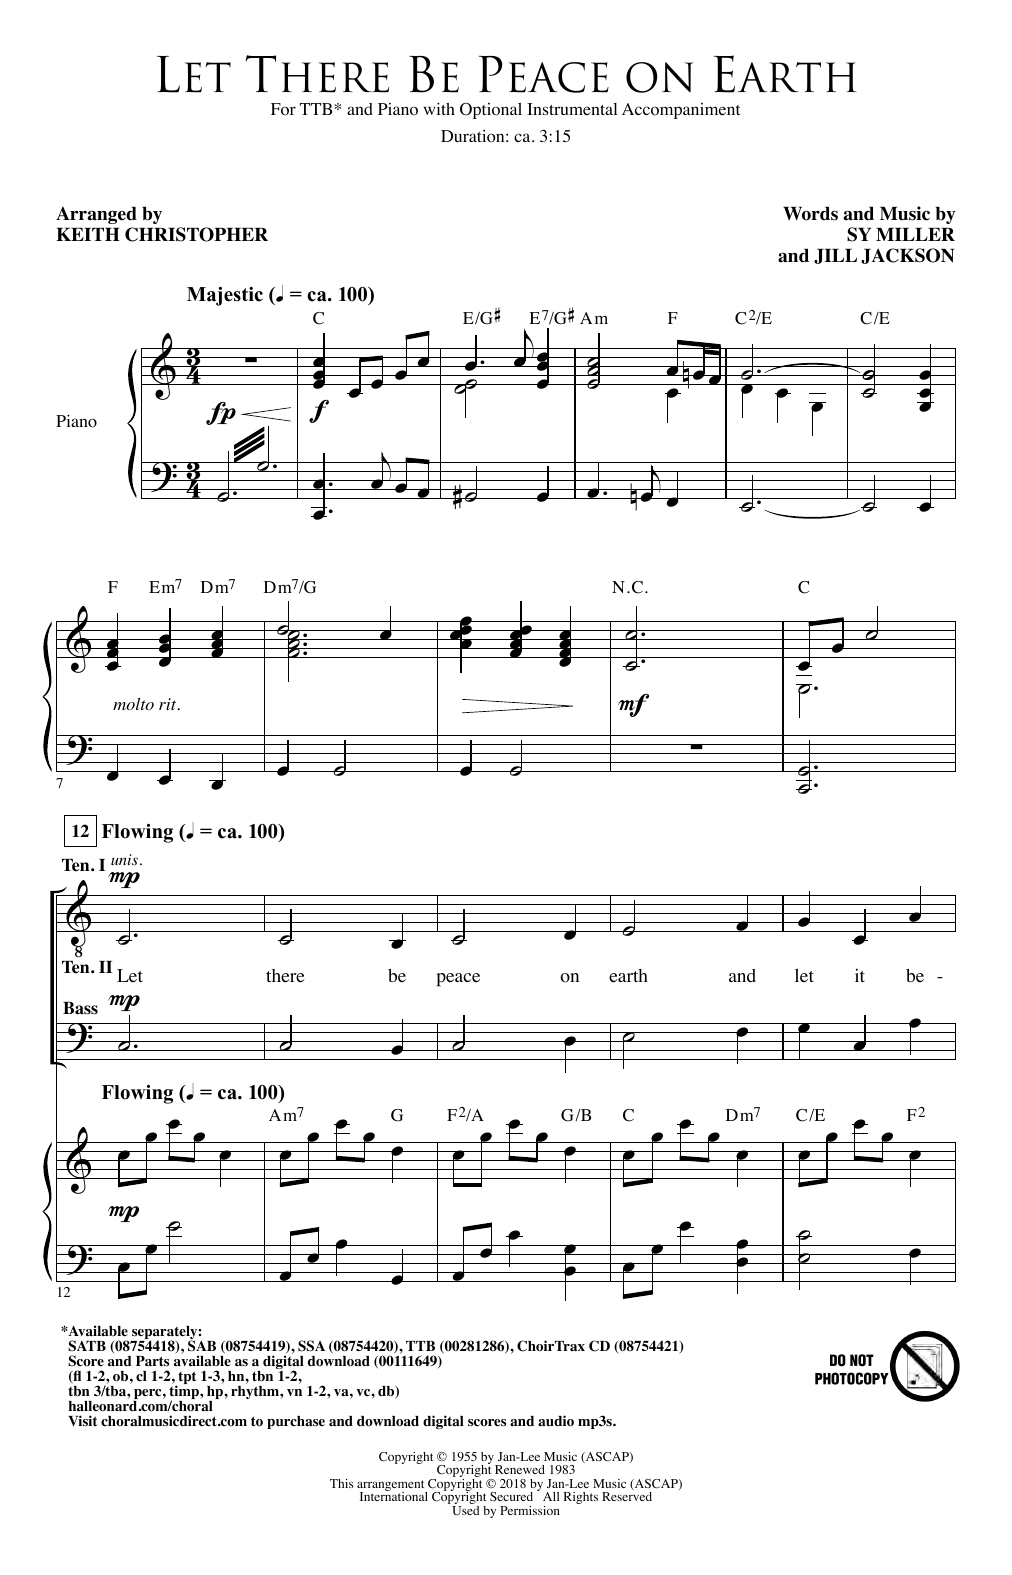 Download Jill Jackson & Sy Miller 'Let There Be Peace On Earth (arr. Keith Christopher)' Digital Sheet Music Notes & Chords and start playing in minutes